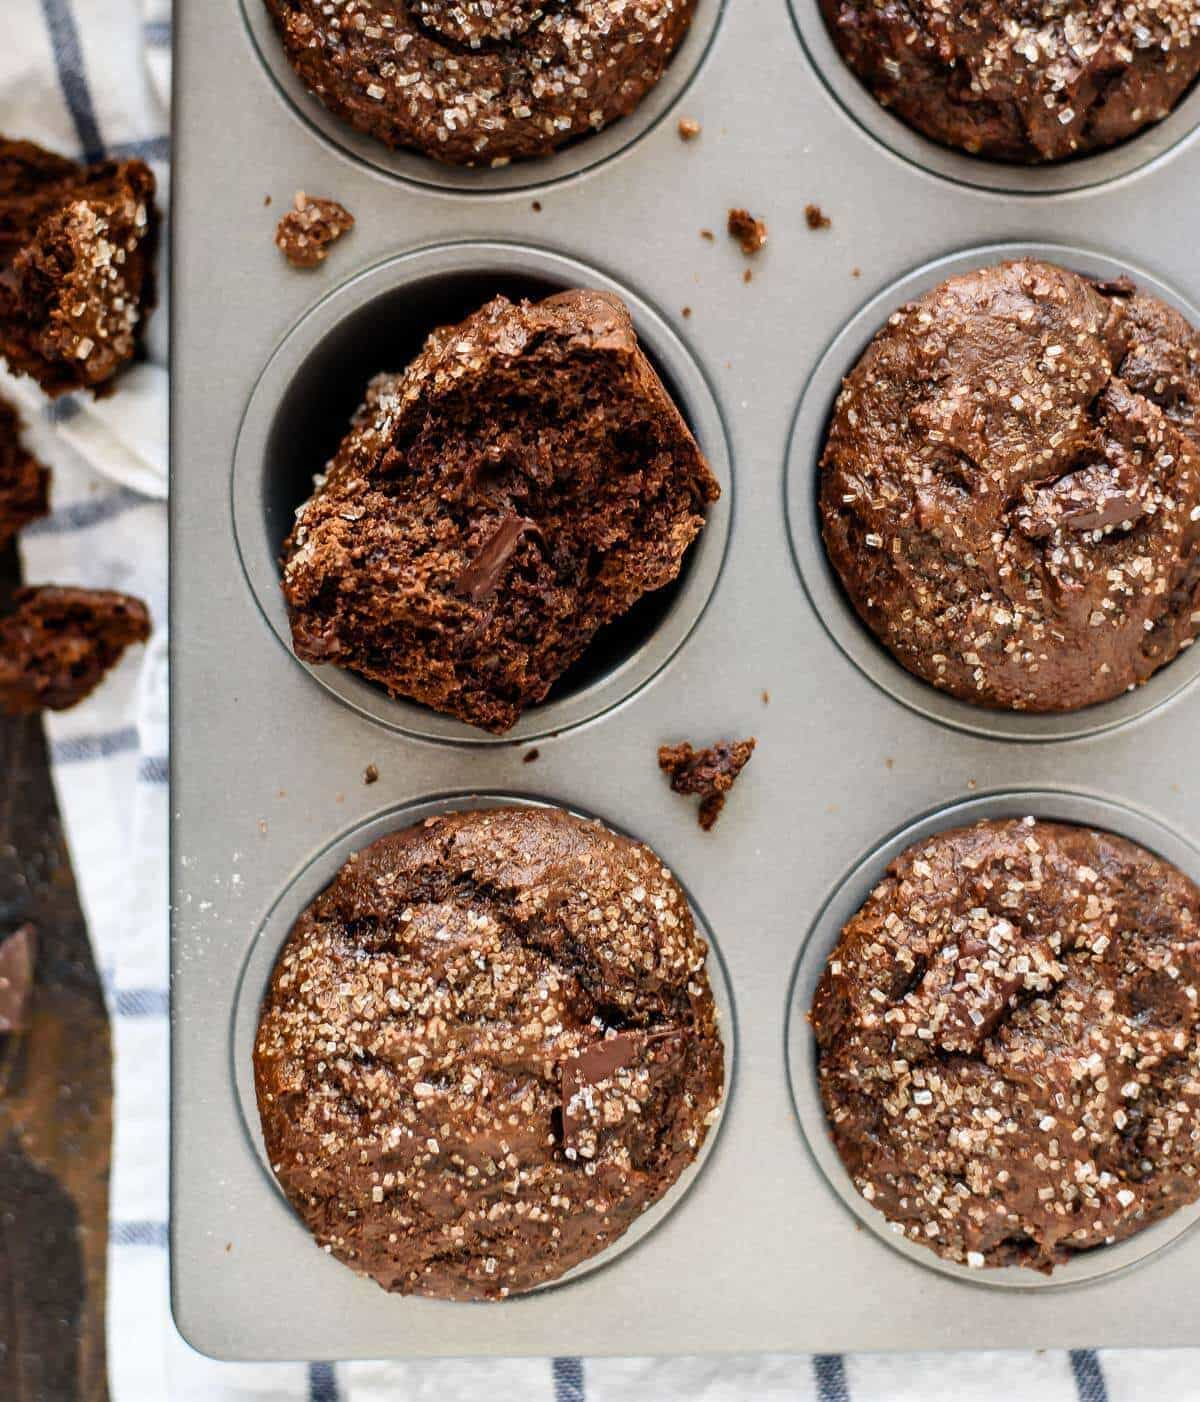 BEST Healthy Gingerbread Muffins. Moist, easy bakery-style muffins with yummy chocolate and cocoa added for extra indulgence! Made with whole wheat flour, coconut sugar, and Greek yogurt, this is our favorite breakfast. Recipe includes vegan and gluten free options.